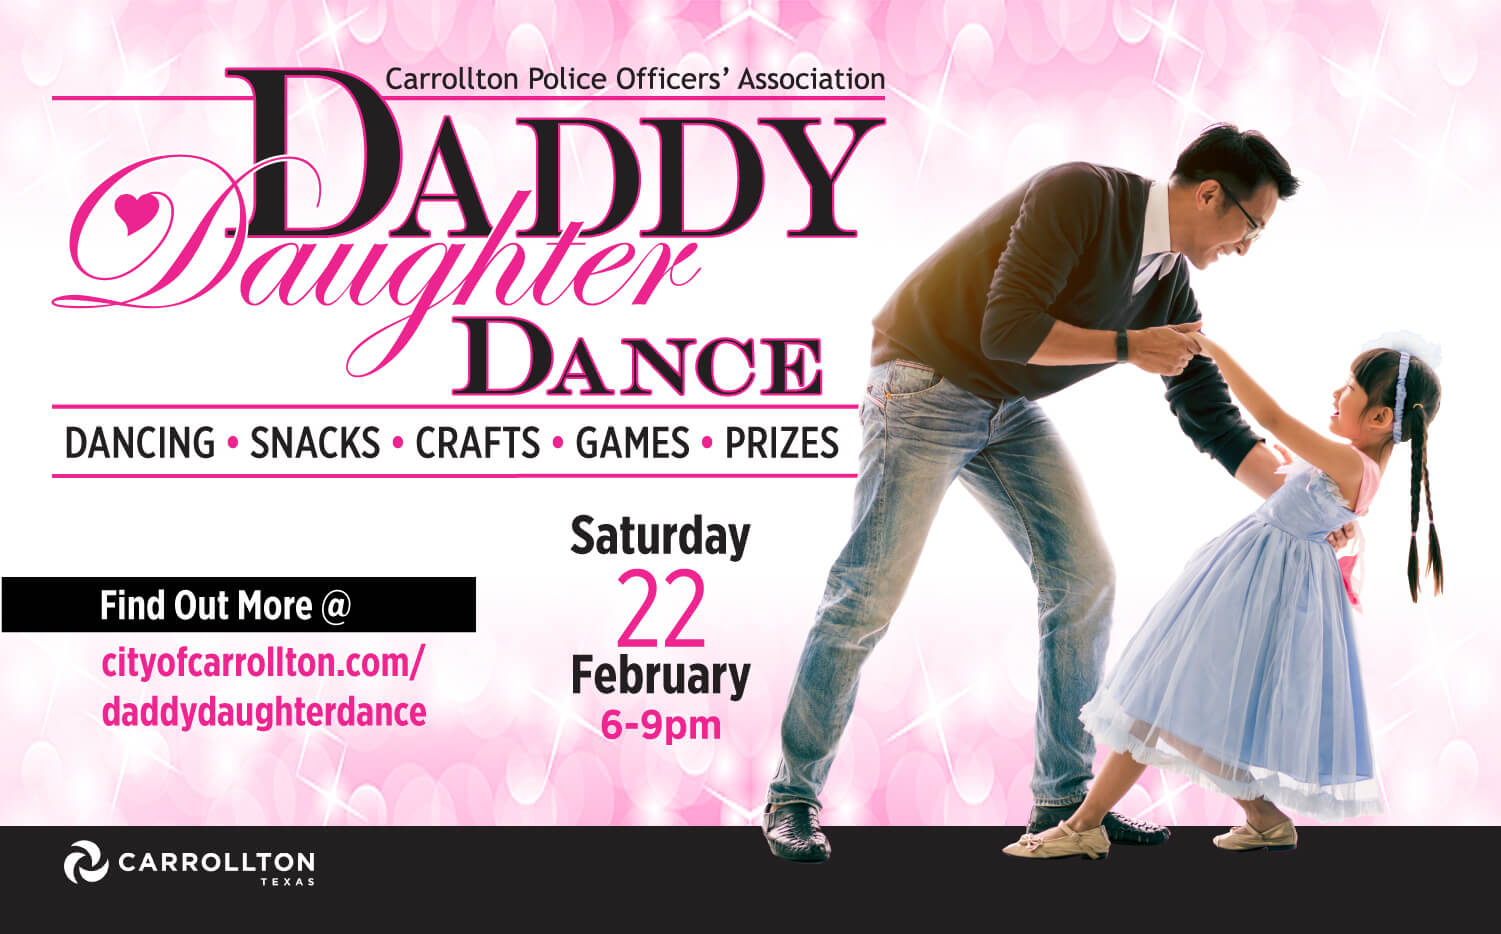 Daddy Daughter Dance 2019 flyer1